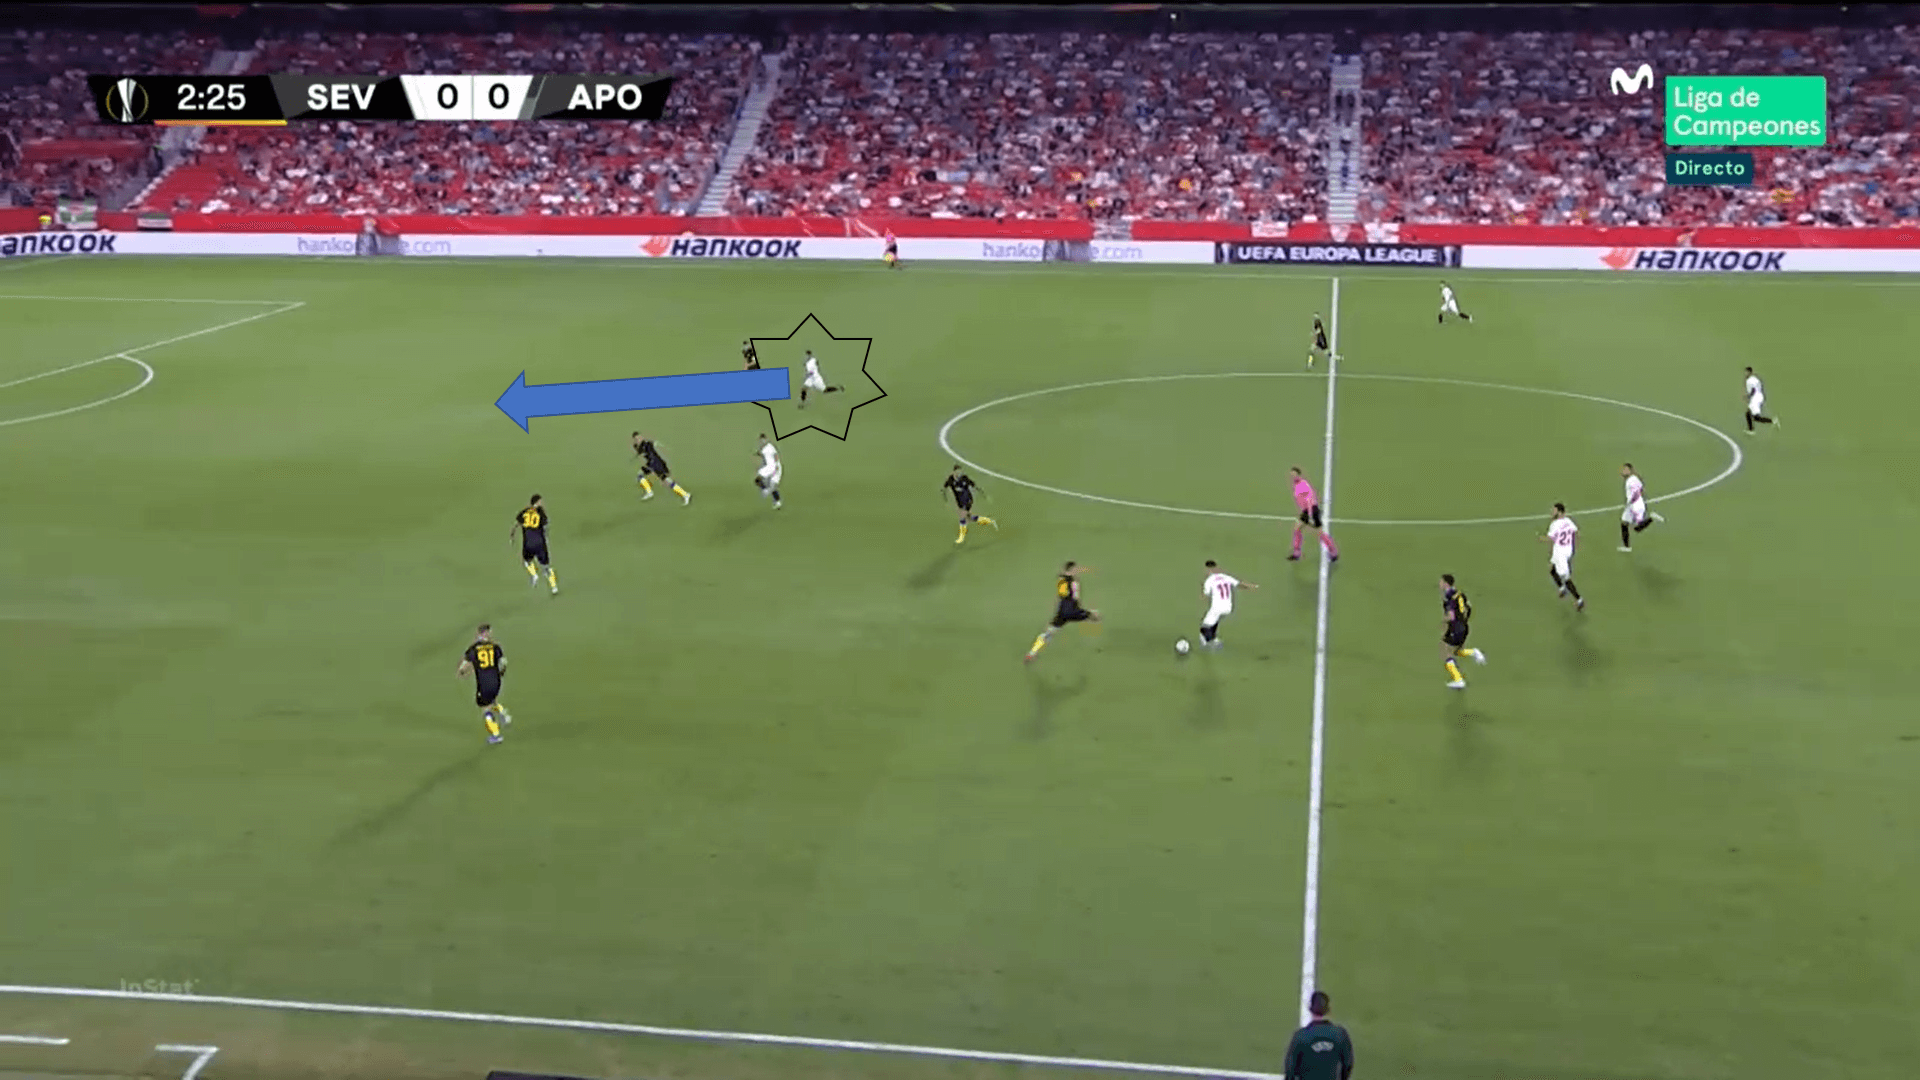 Rony Lopes at Nice 2019/20 - scout report - tactical analysis tactics